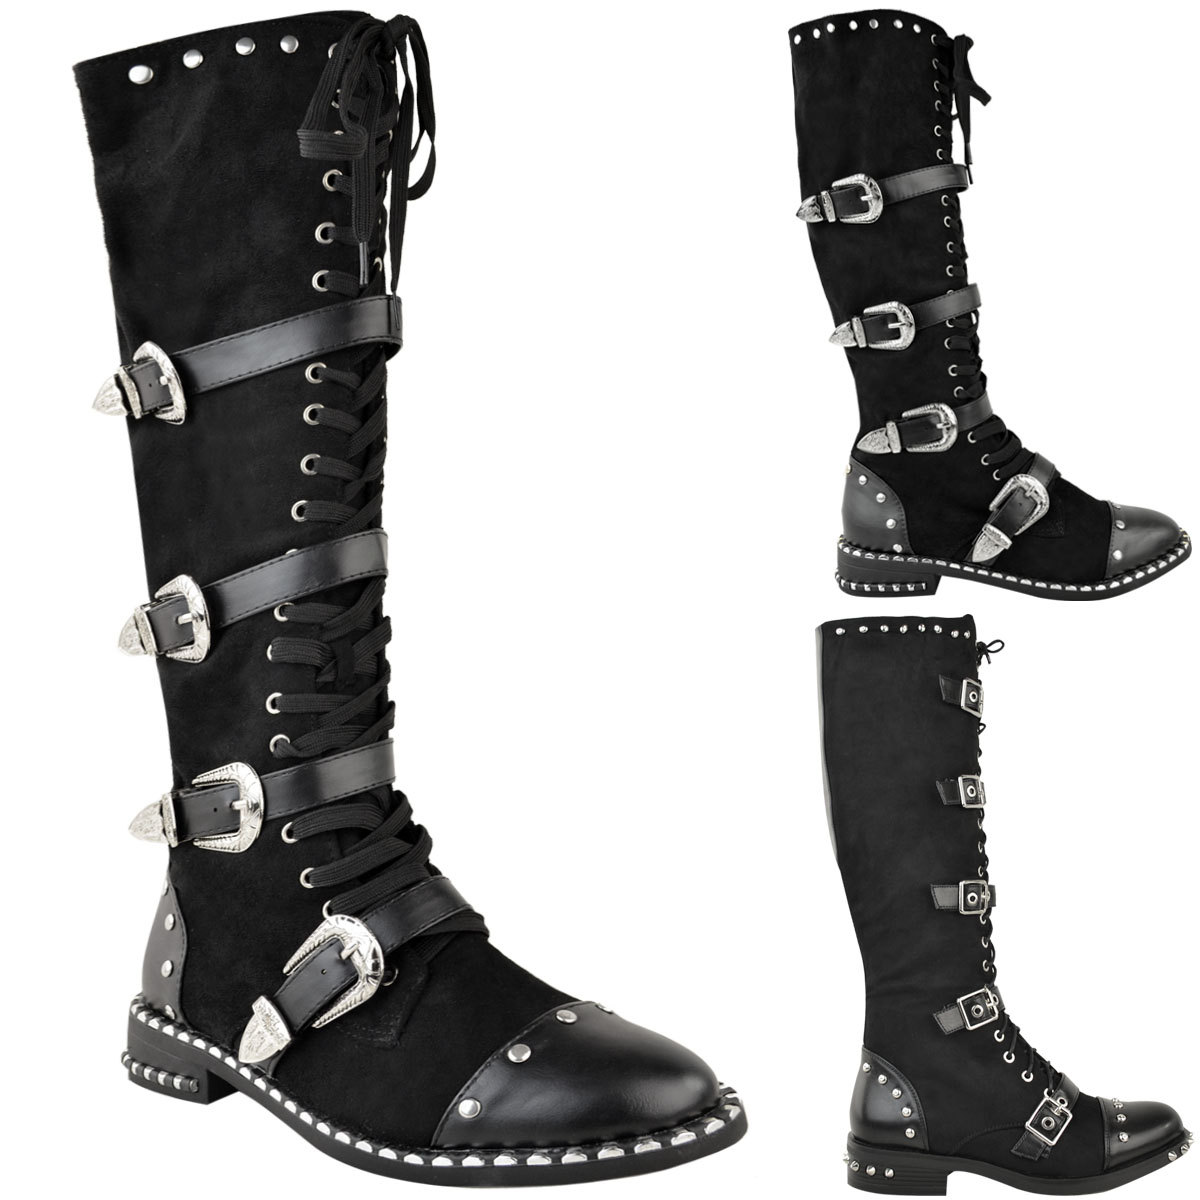 Womens Ladies Knee High Boots Studded Punk Grunge Rock